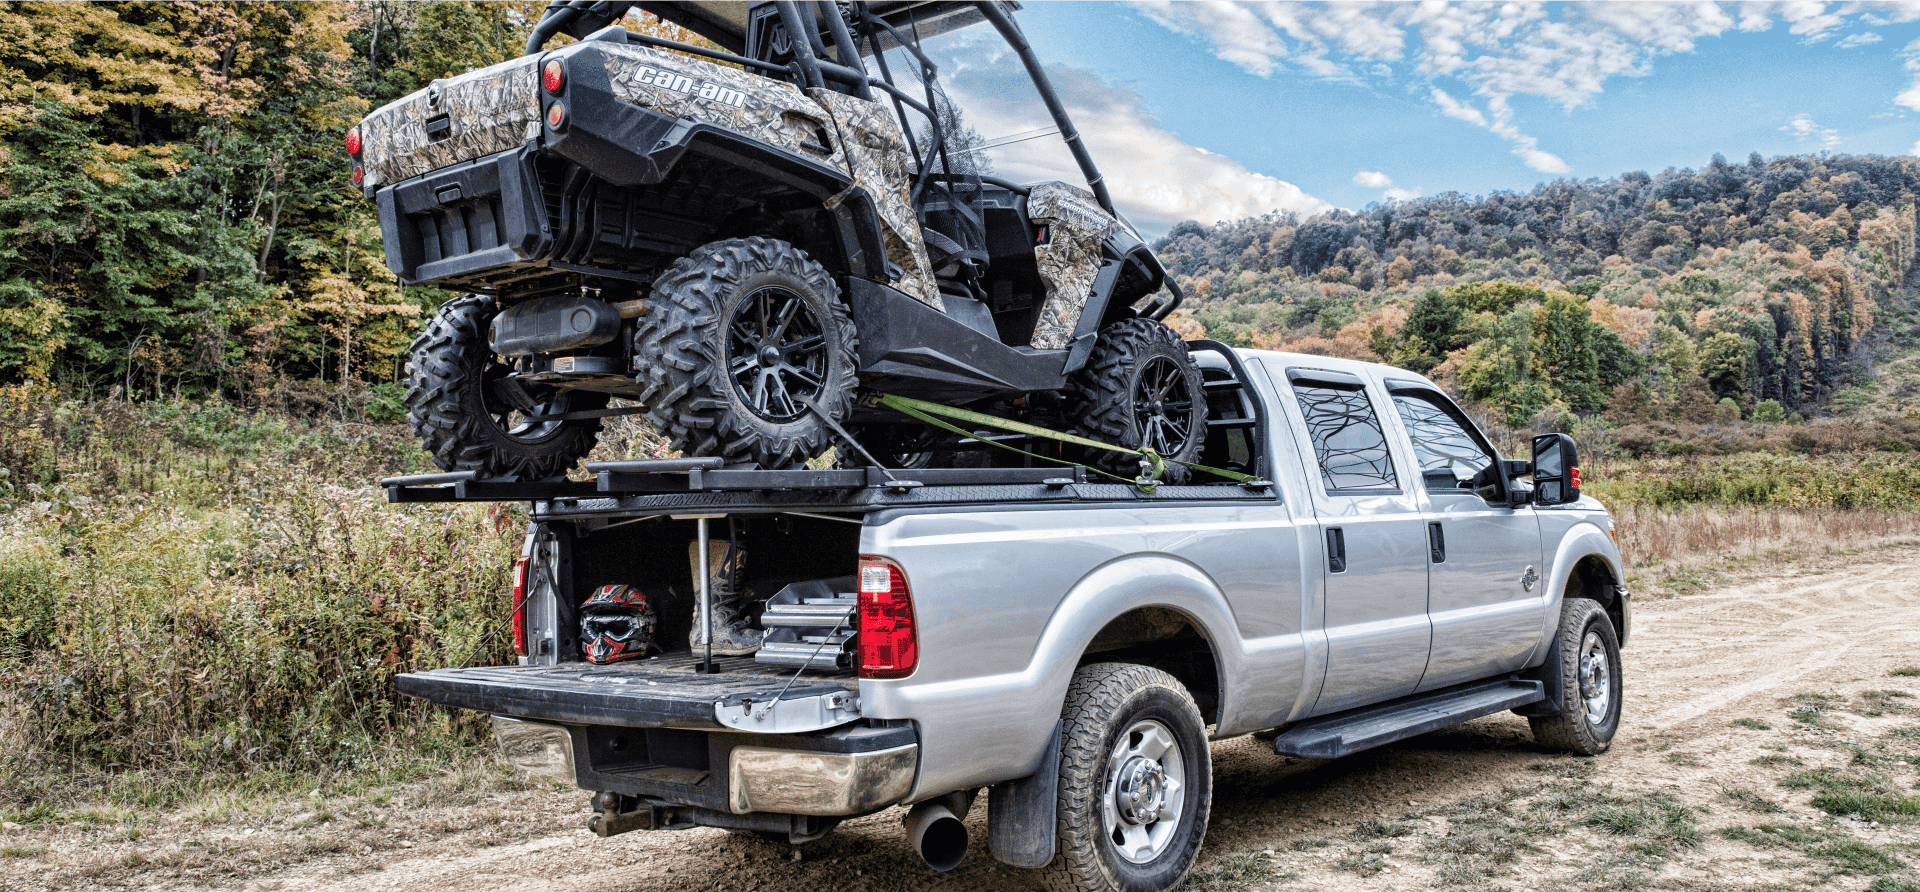 Diamondbacksxs Pickup truck bed covers, Truck bed covers